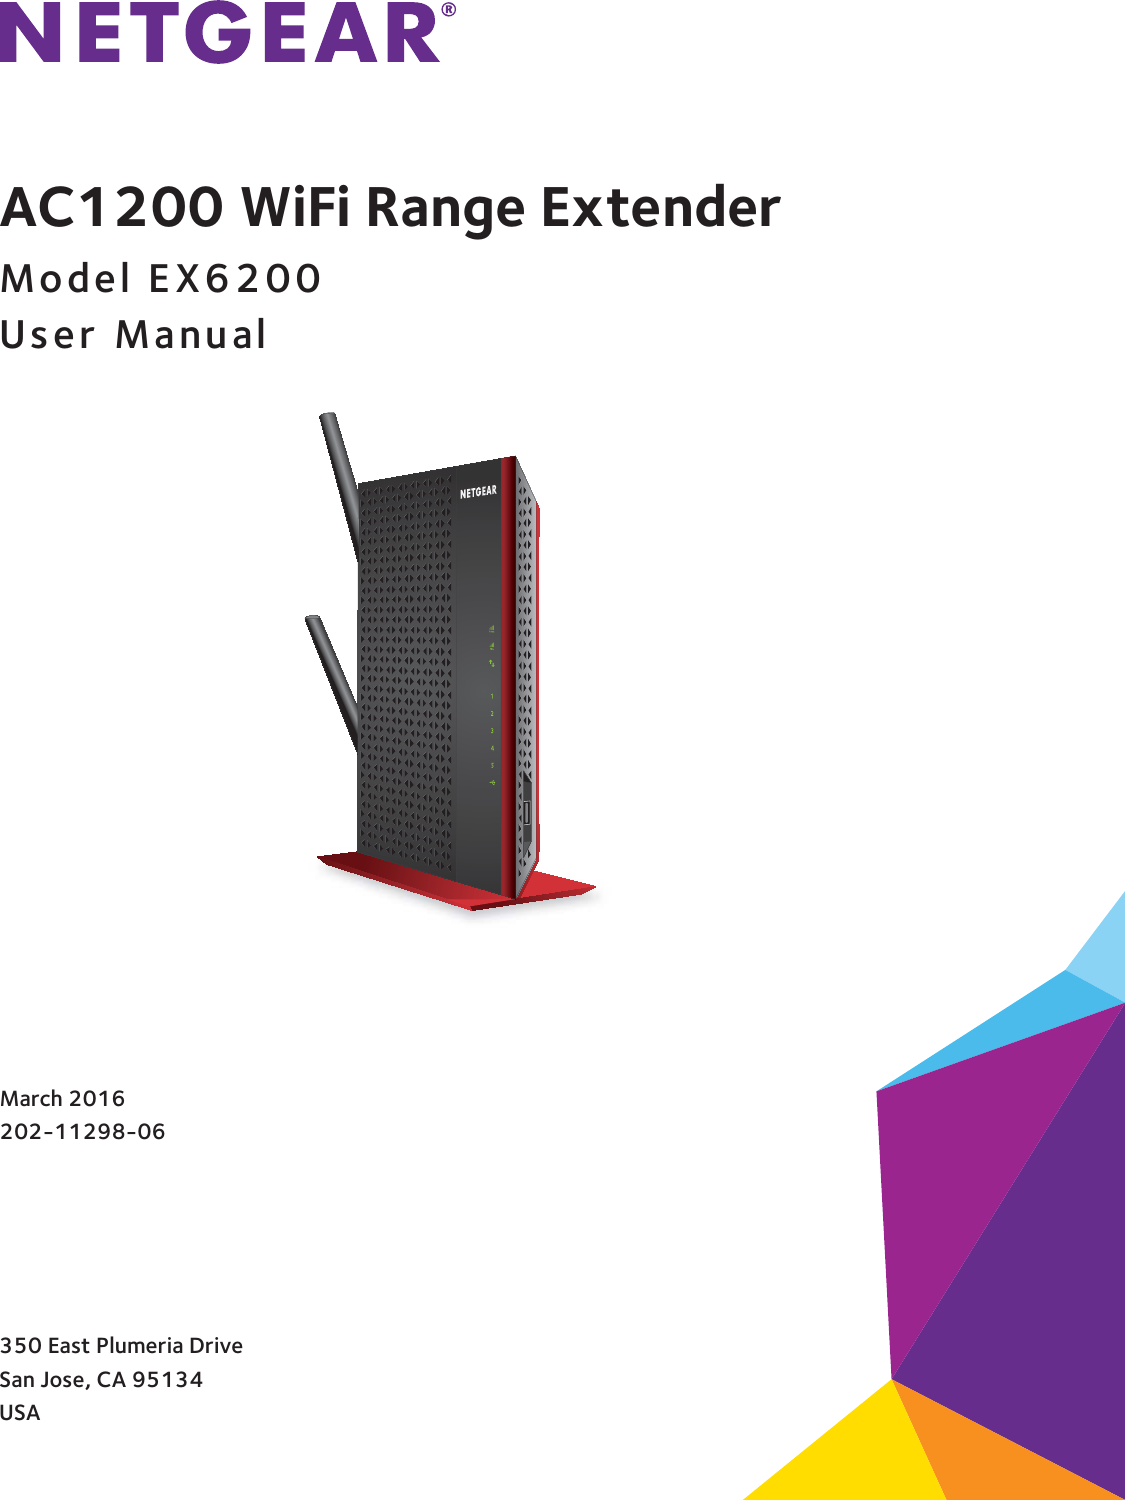 netgear wifi extender manual ex6200